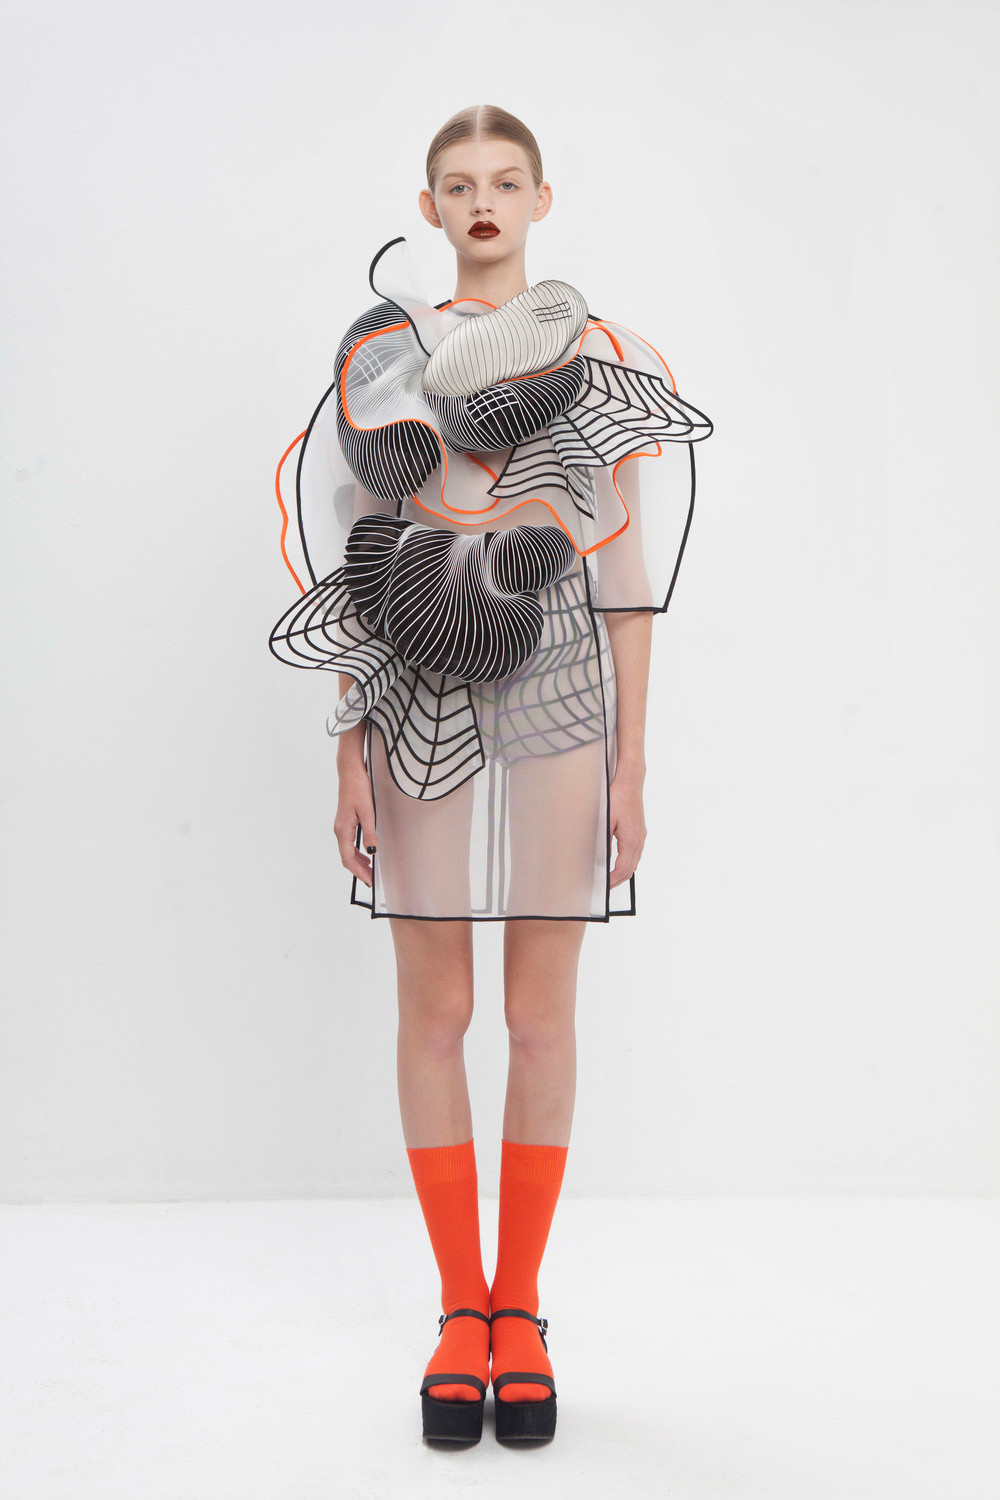 hard-copy-collection-by-noa-raviv-yellowtrace-02